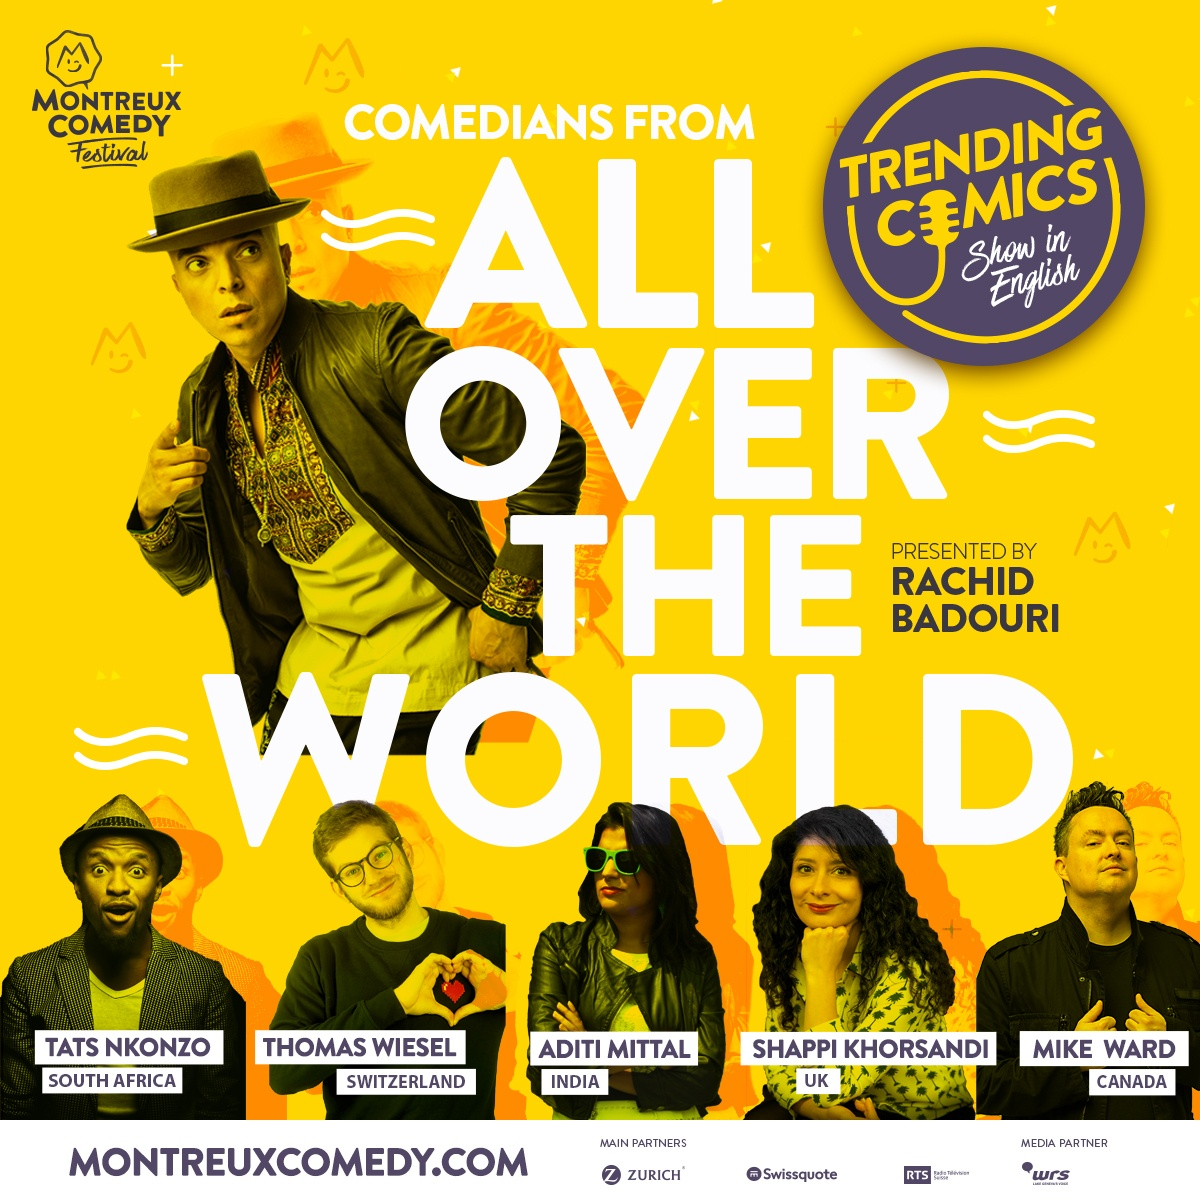 Trending Comics Gala at the Montreux Comedy Festival